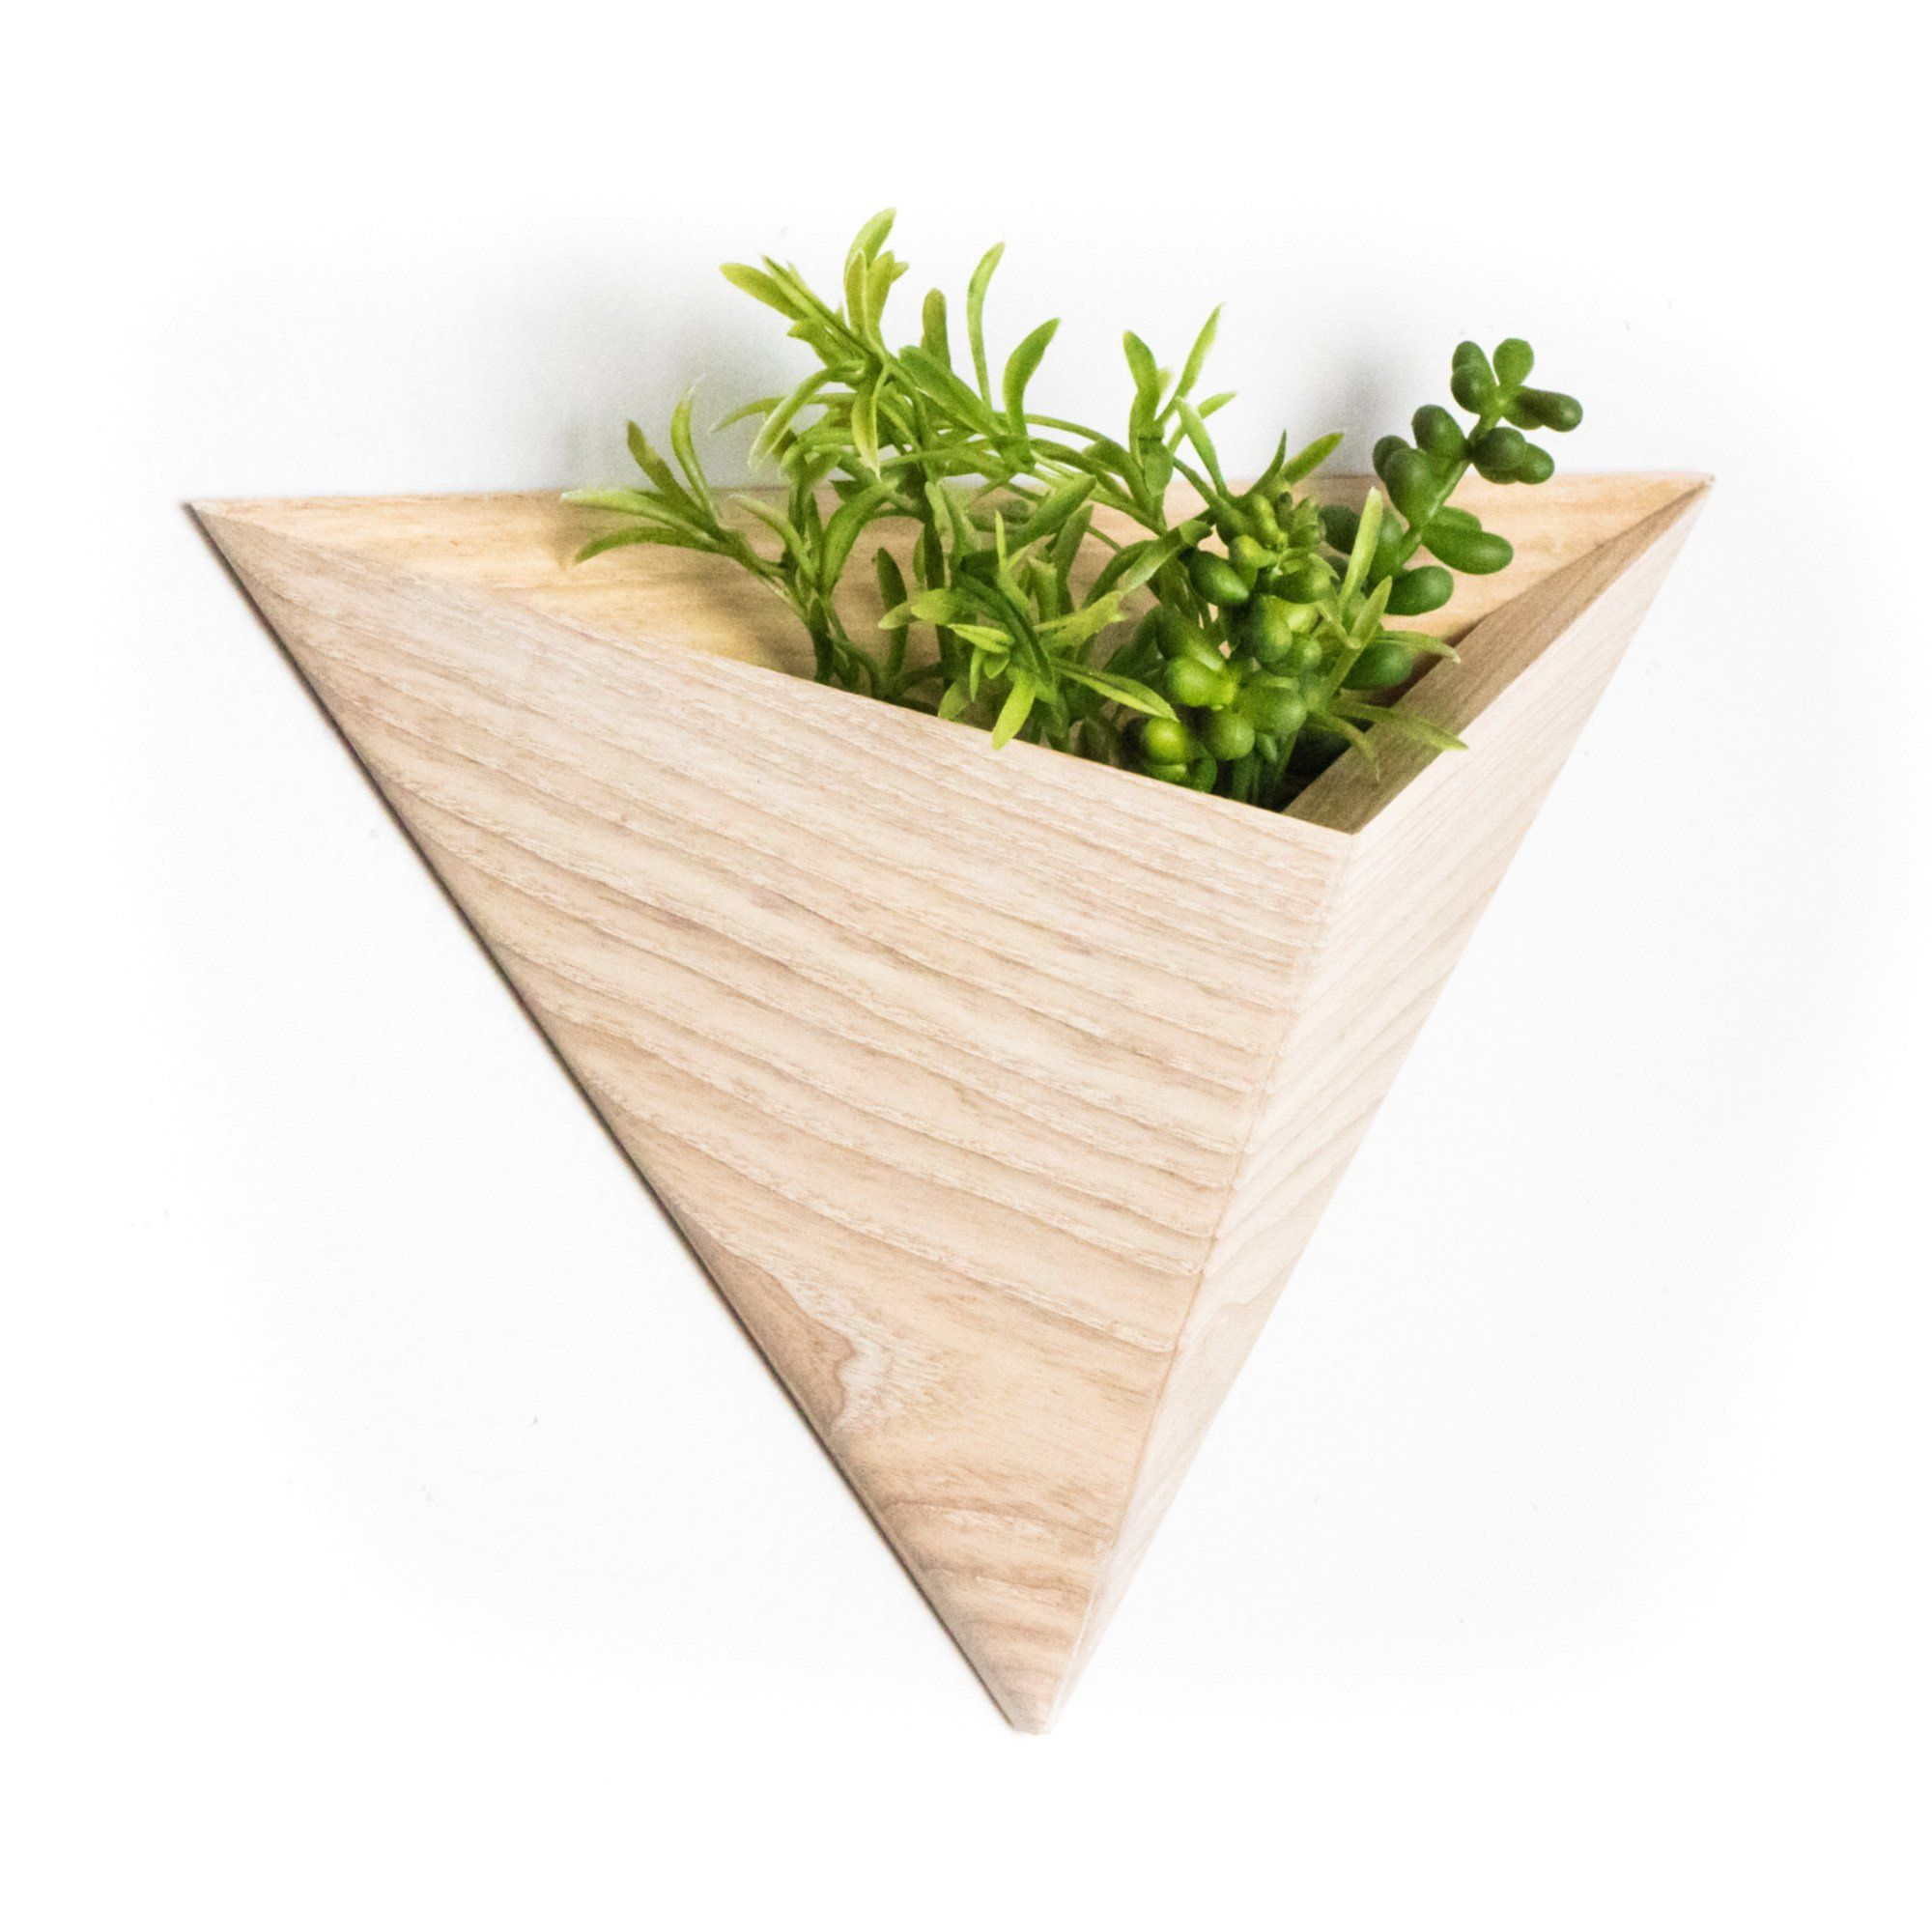 Wall Planter With Geometric Design Wall Planter Wall Planters Indoor Geometric Planter